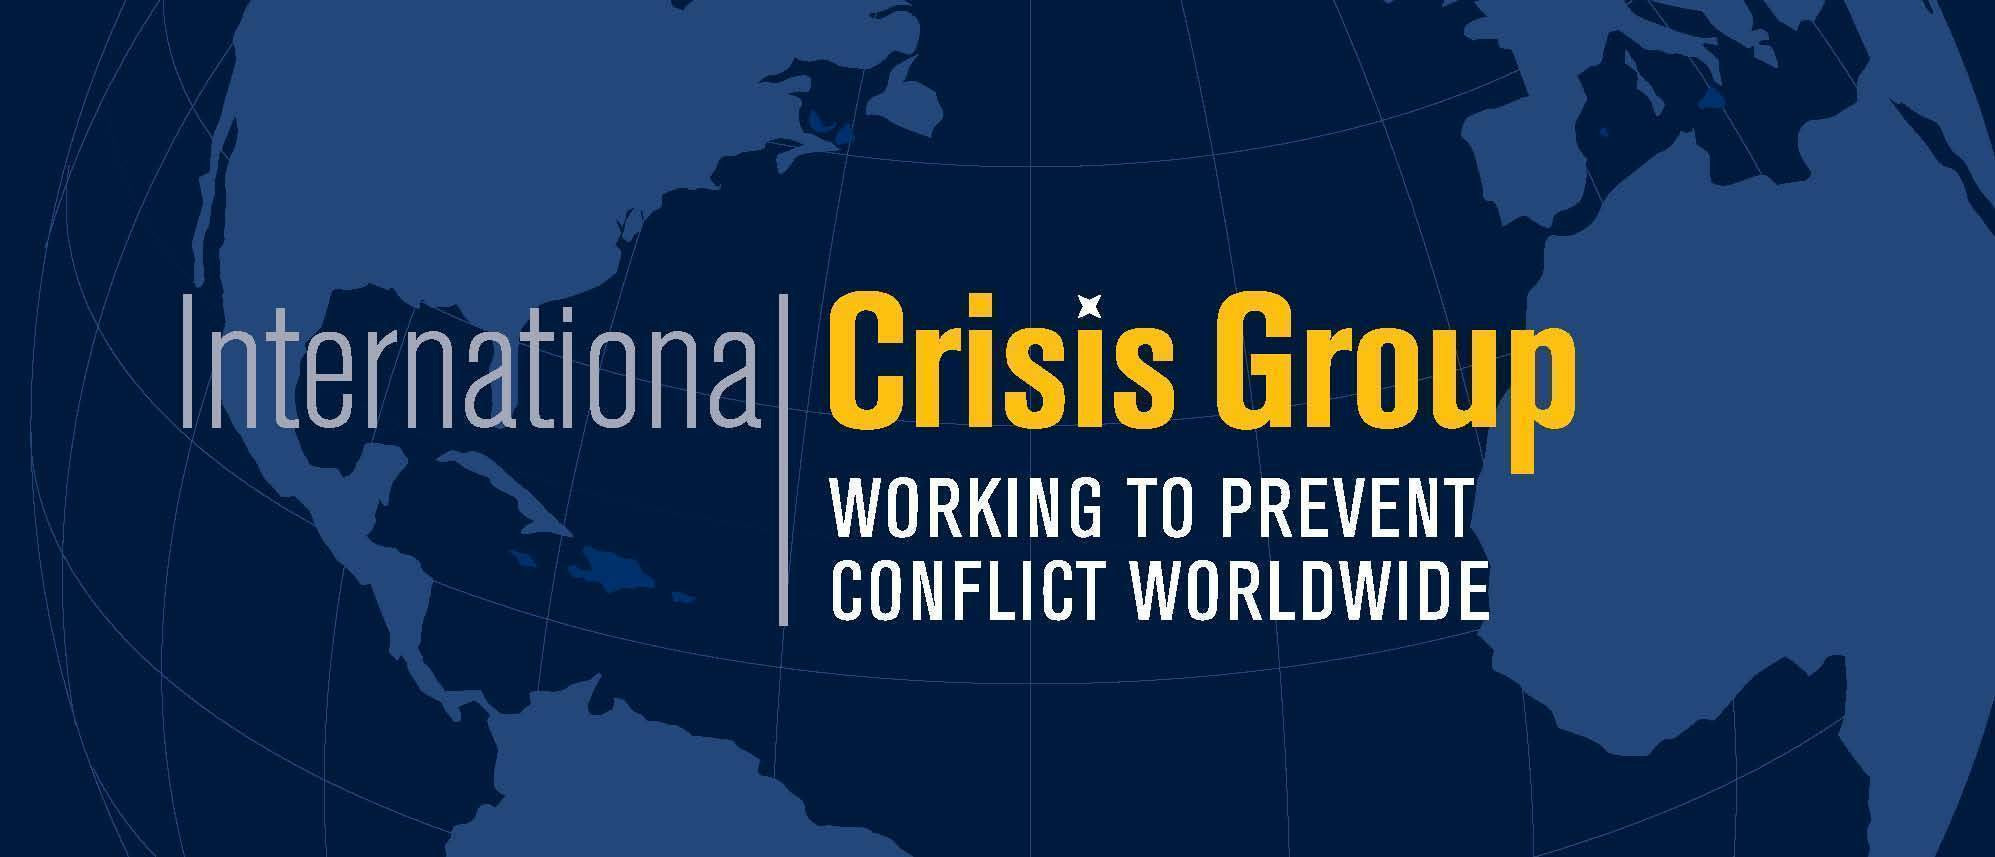 International Crisis Group logo